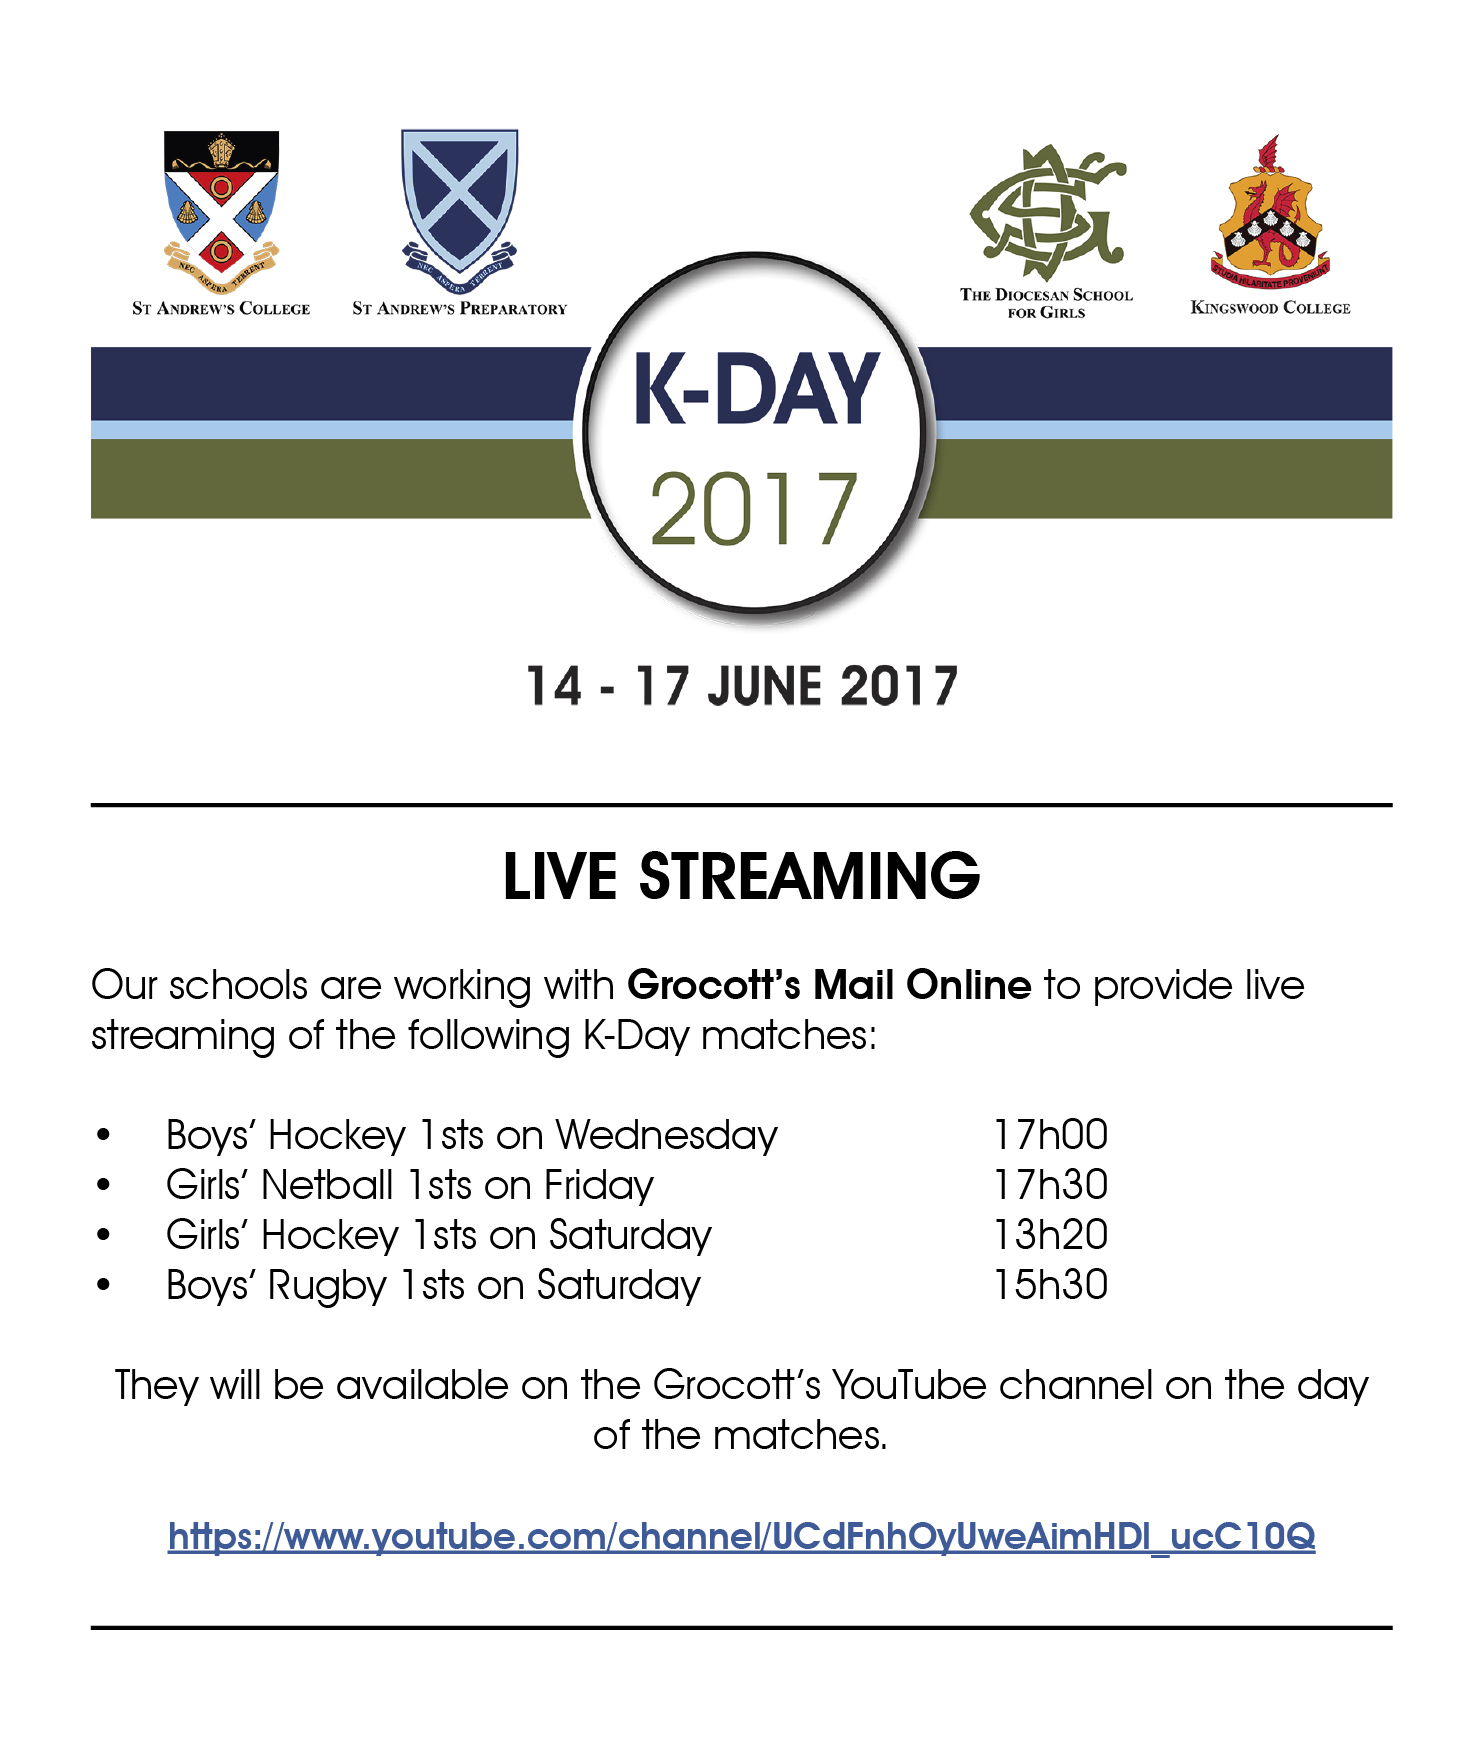 K-DAY 2017 LIVE STREAMING NOTICE